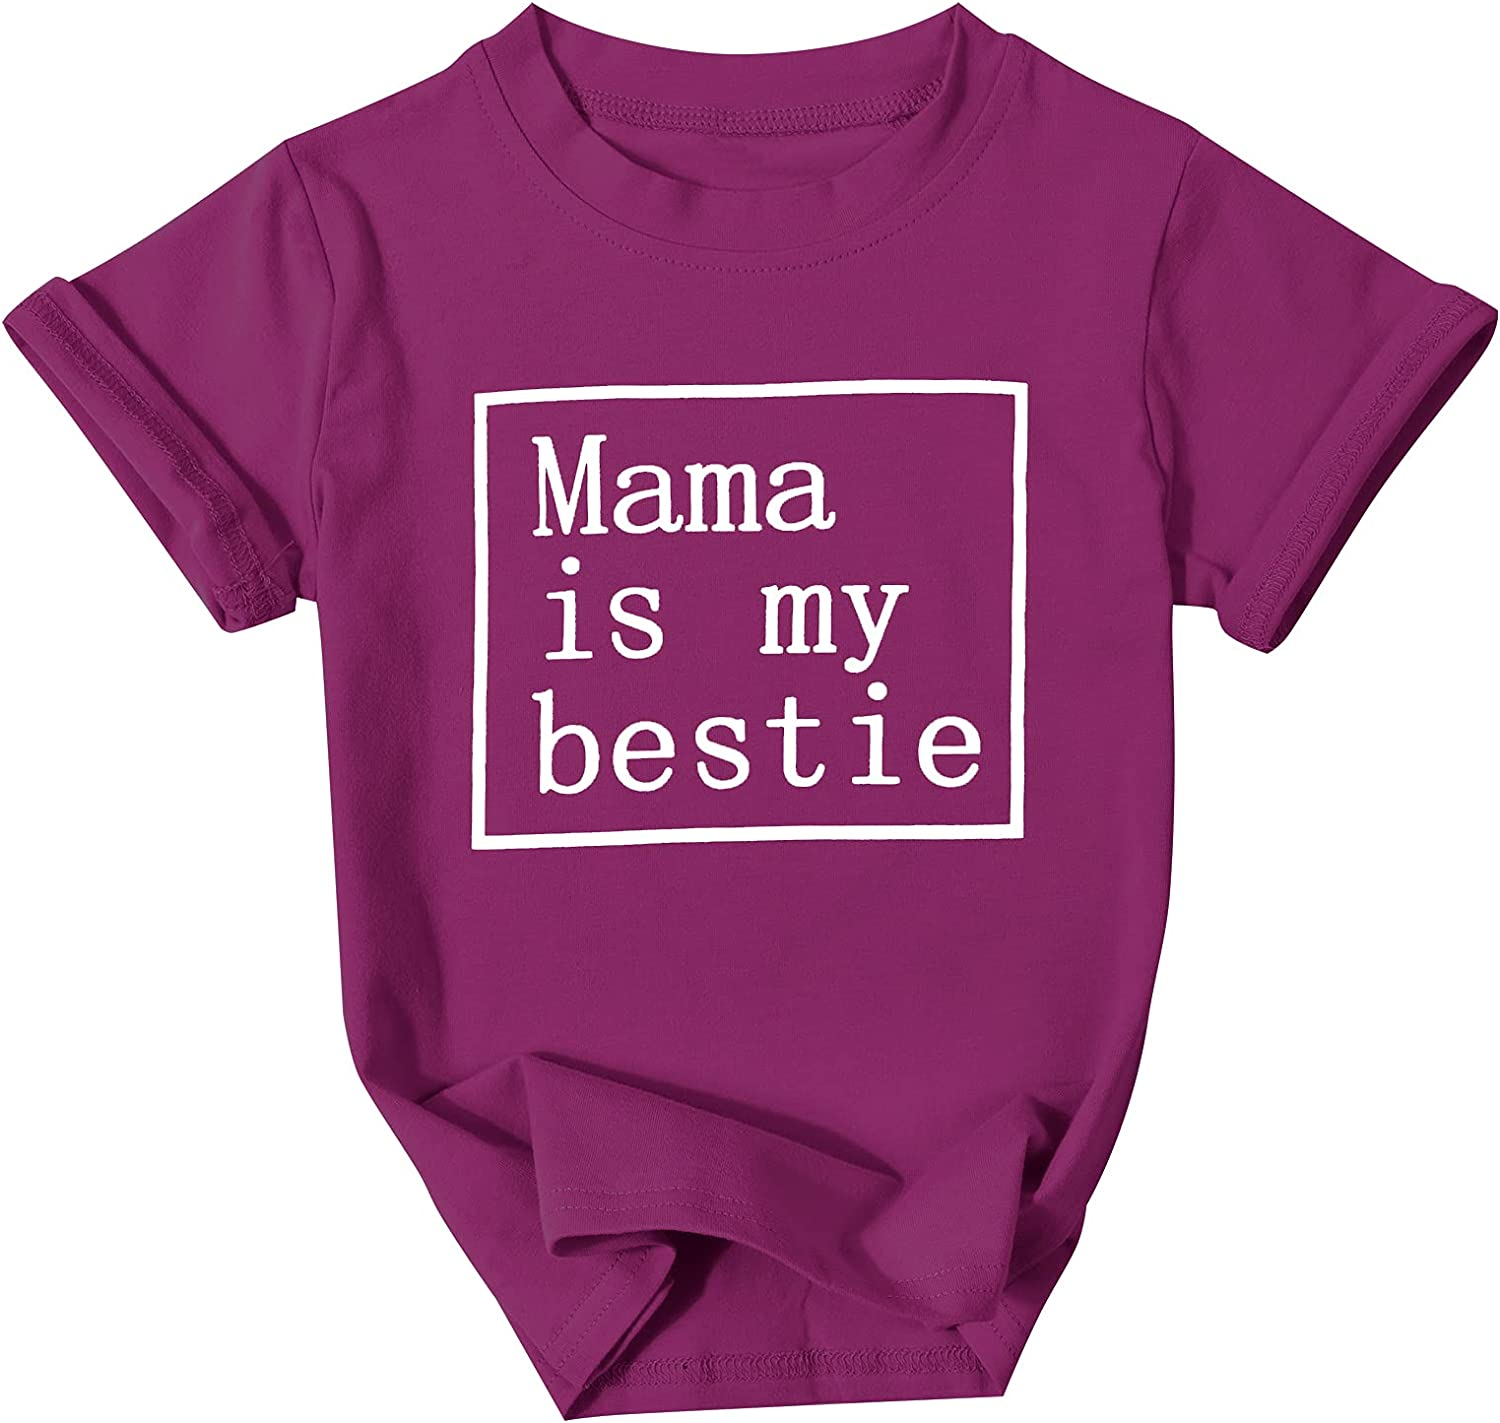 Toddler Baby Girls Boys Tshirt Mama is My Bestie Announcement Letter Print Shirt Short Sleeve Tee Tops